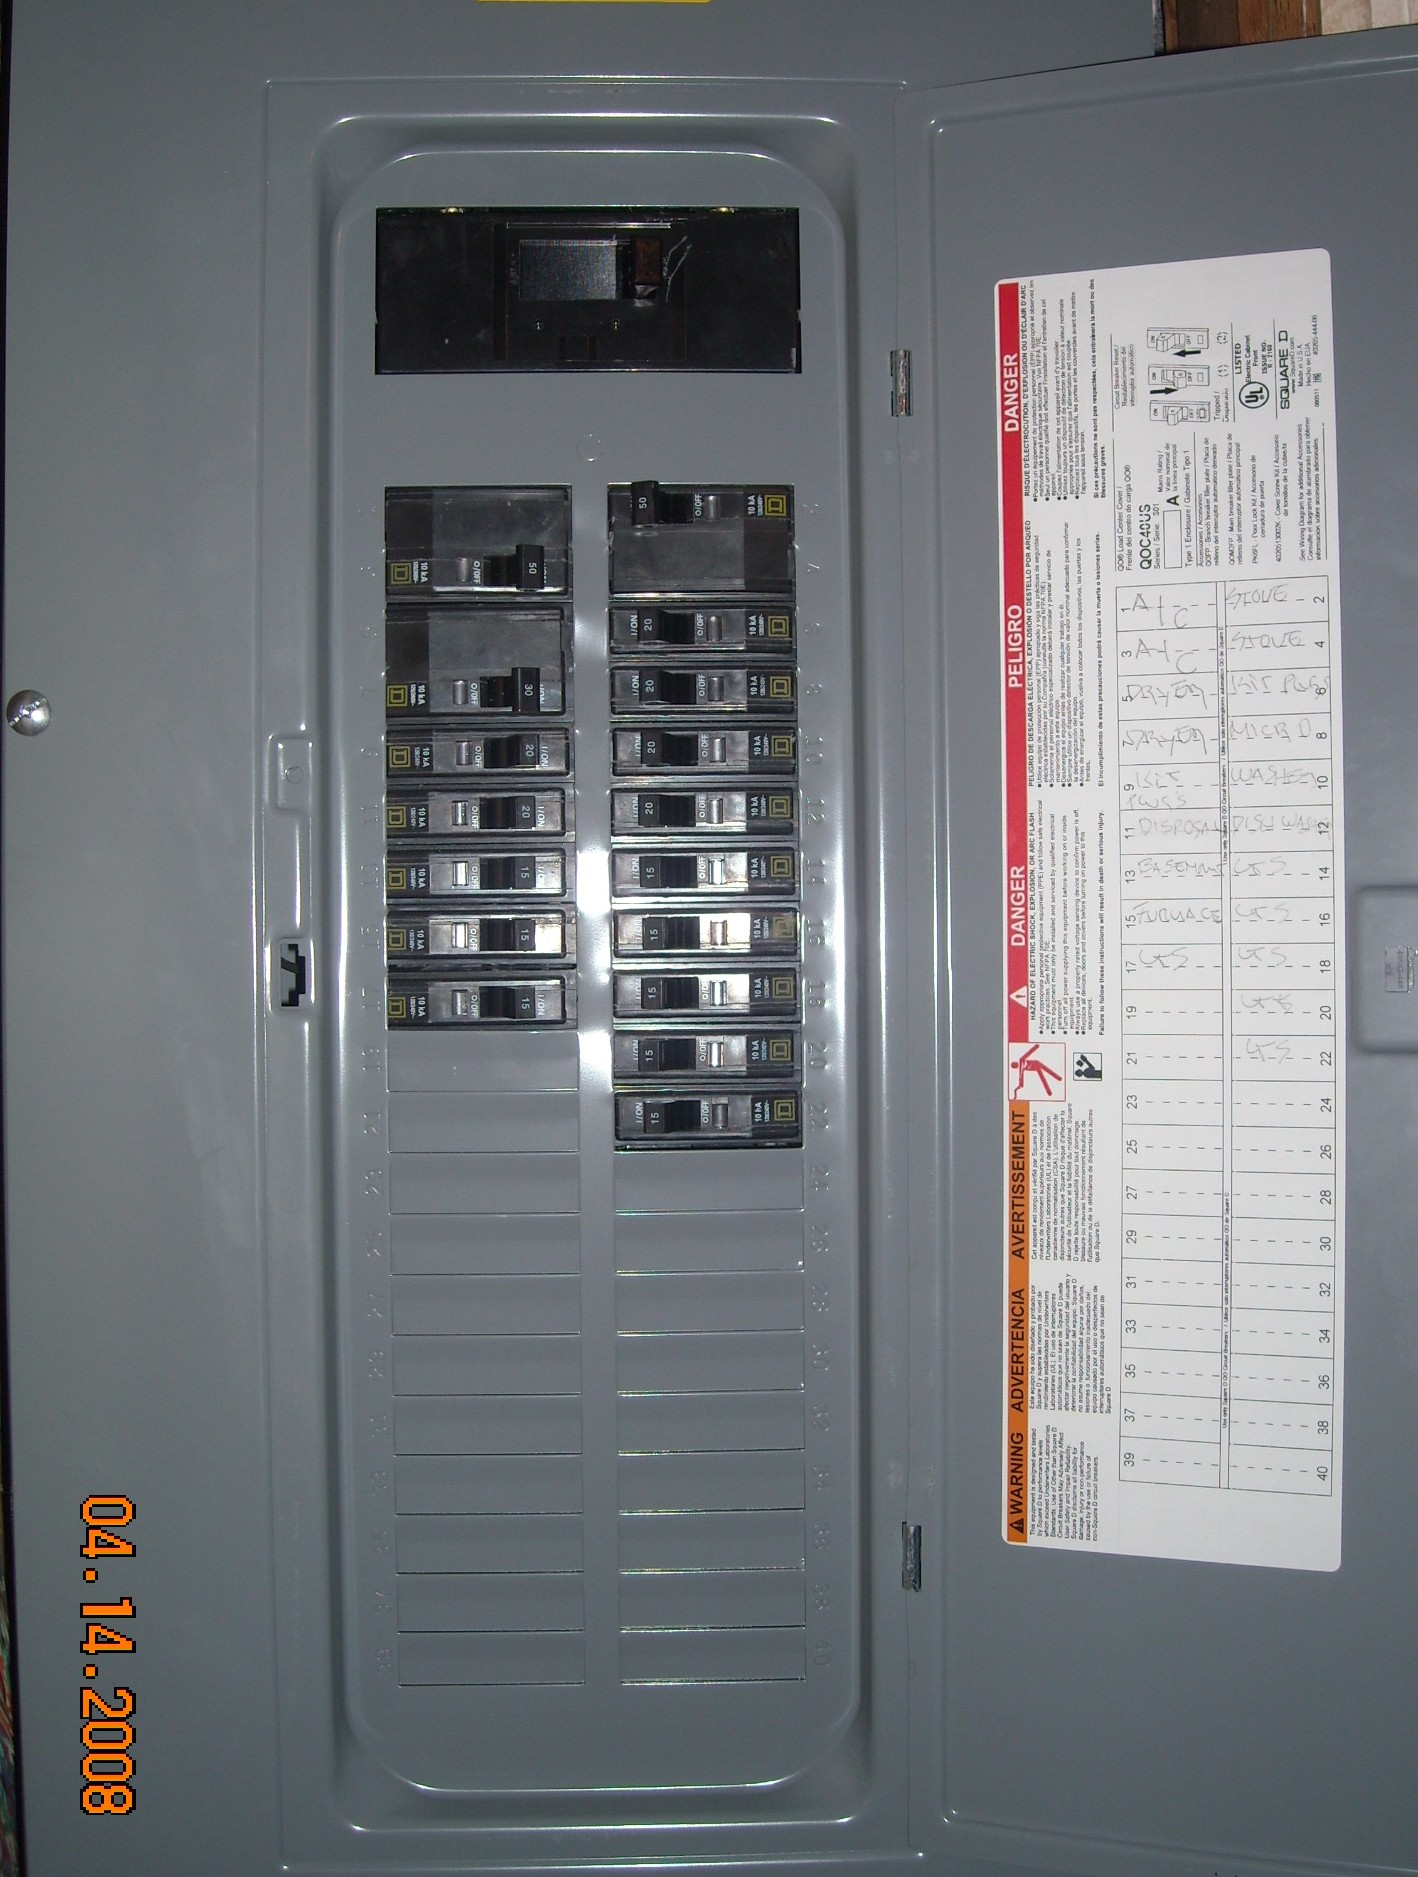 Electrical Fuse Box Wiring Diagram Data Circuit Breaker Boxes Diagrams Together With House Open Schema Lock Source Home